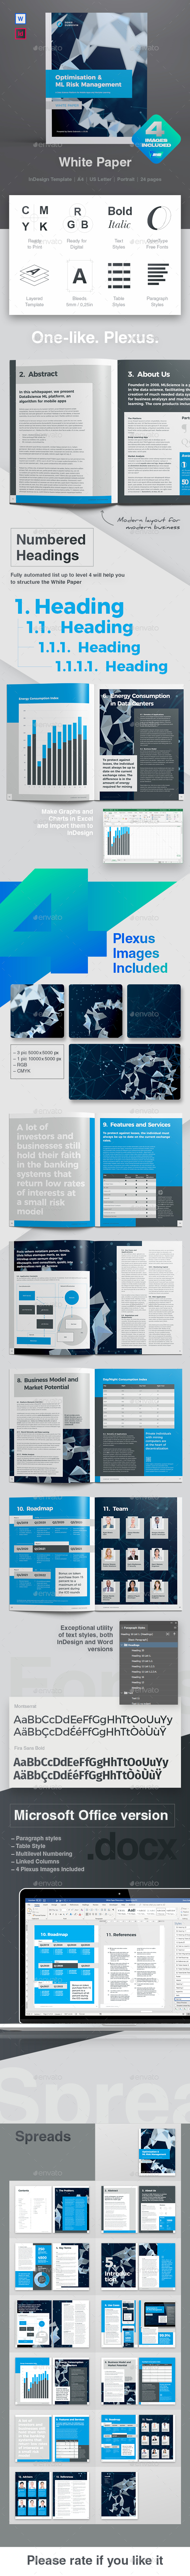 White Paper Graphics Designs Templates From Graphicriver